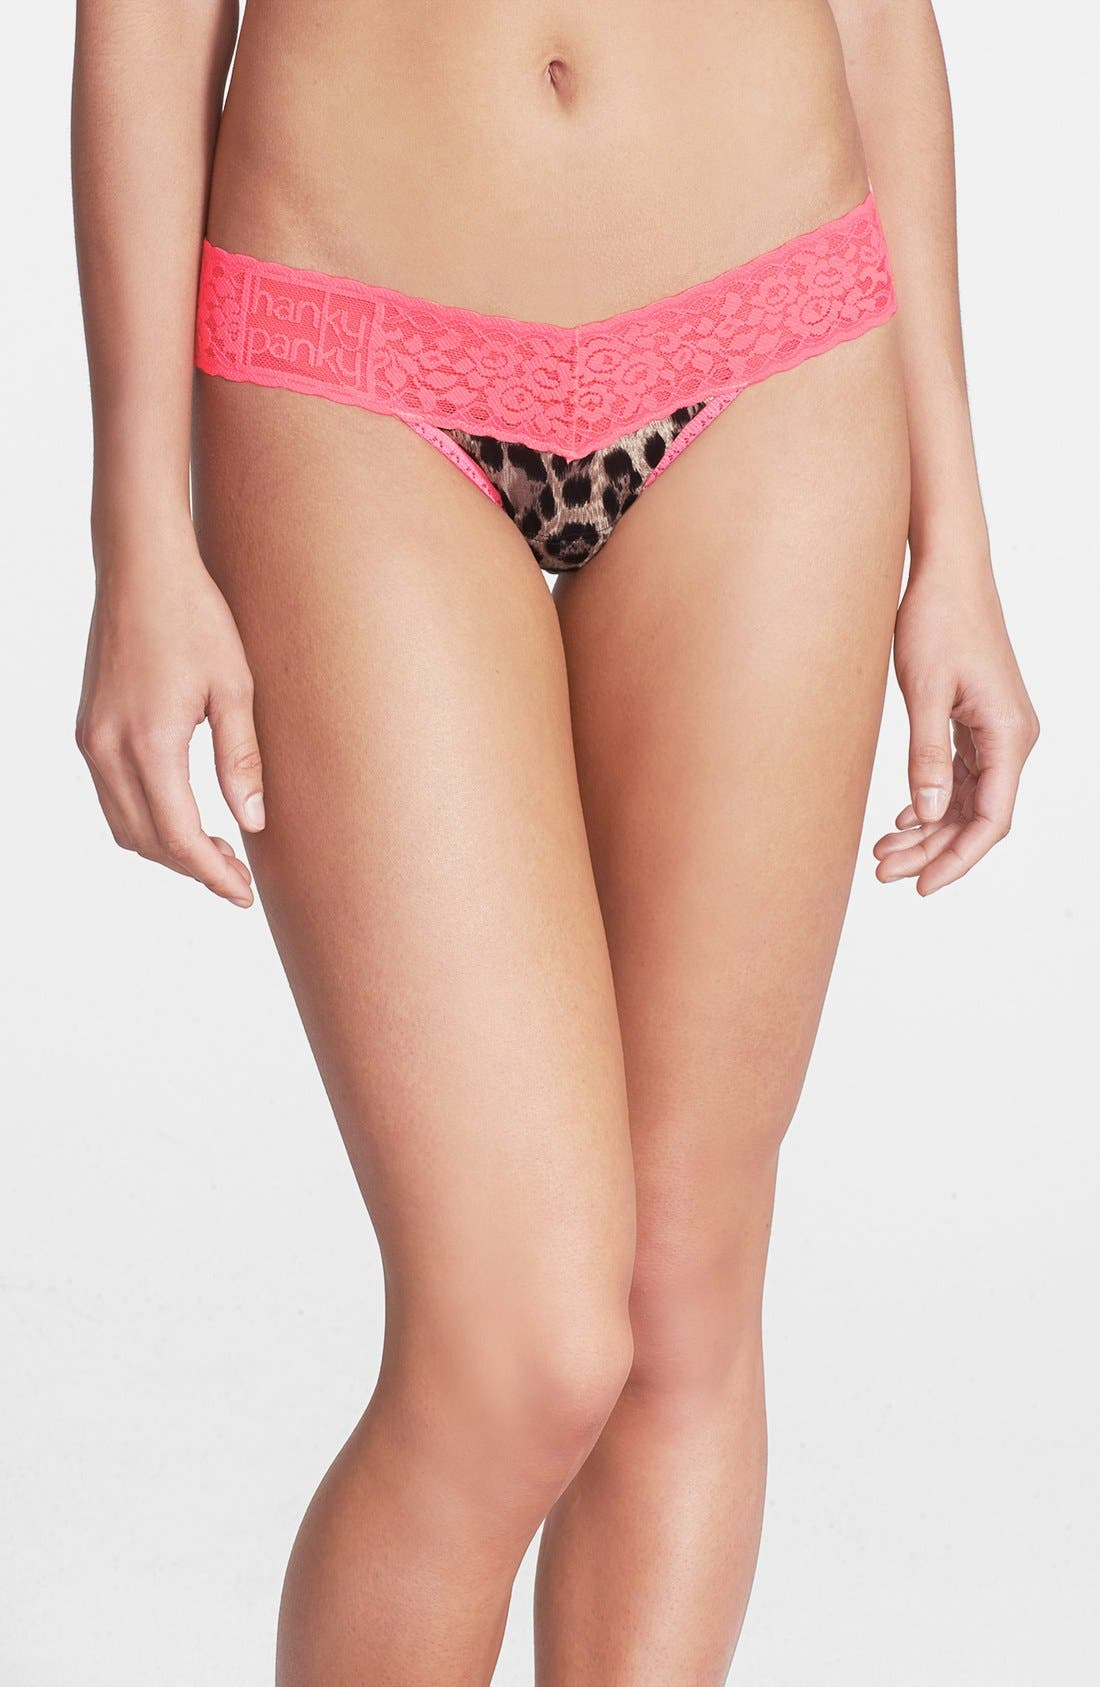 Alternate Image 1 Selected - Hanky Panky 'Feline Fatale' Low Rise Lace Trim Thong